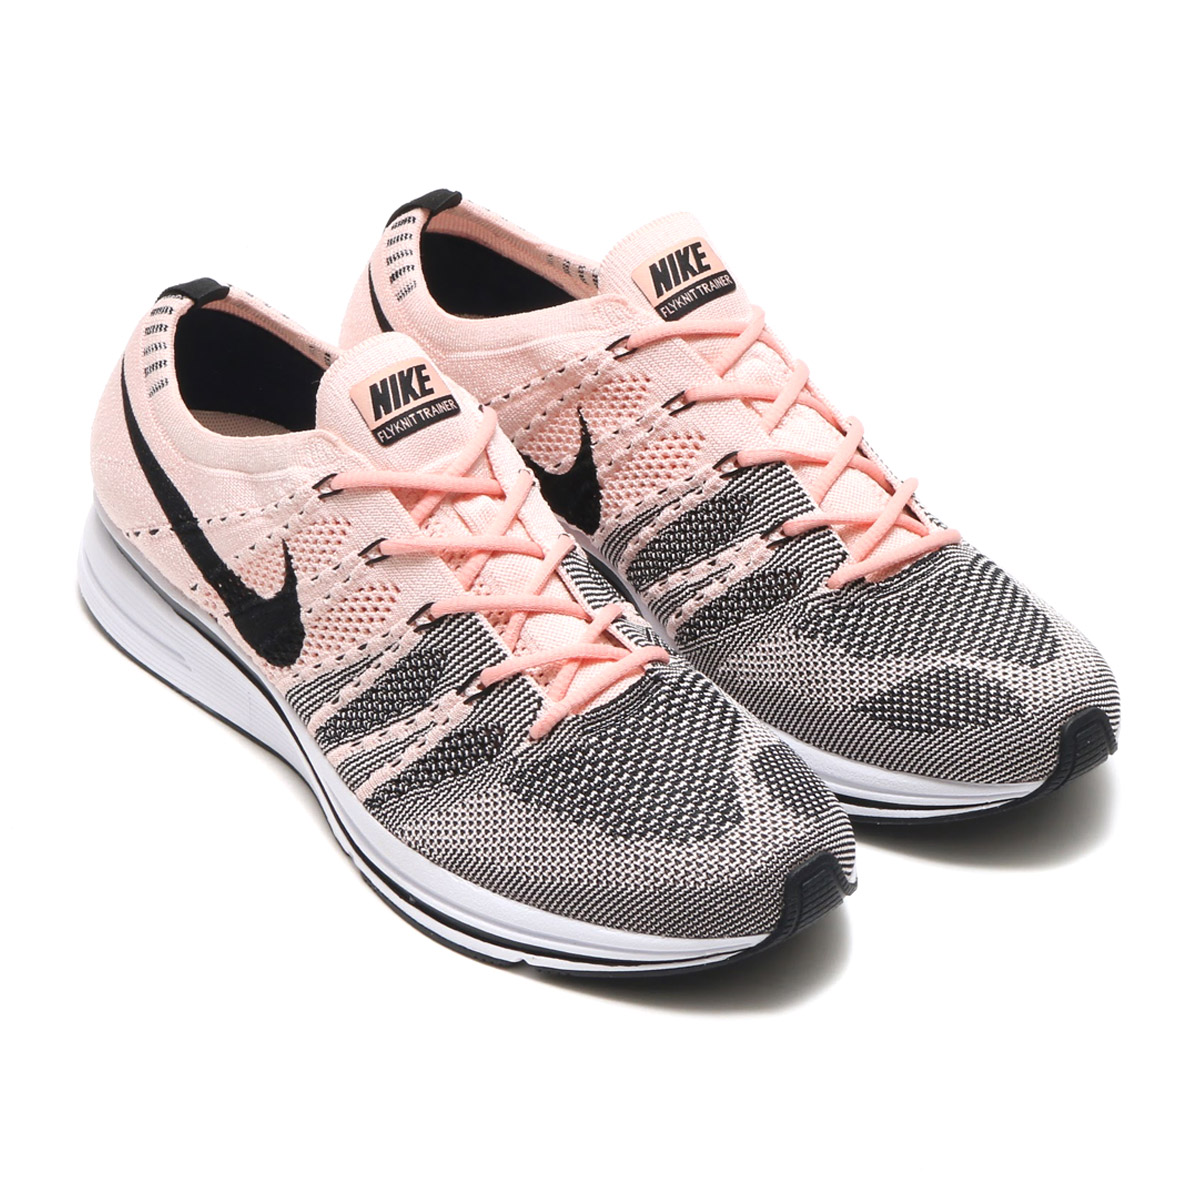 the latest 923f7 68ef8 As well as Zoom Air showing quick repulsion, Nike fried food knit trainer  featuring a soft color comes up. It is easy to match the soft shade color  of サン ...